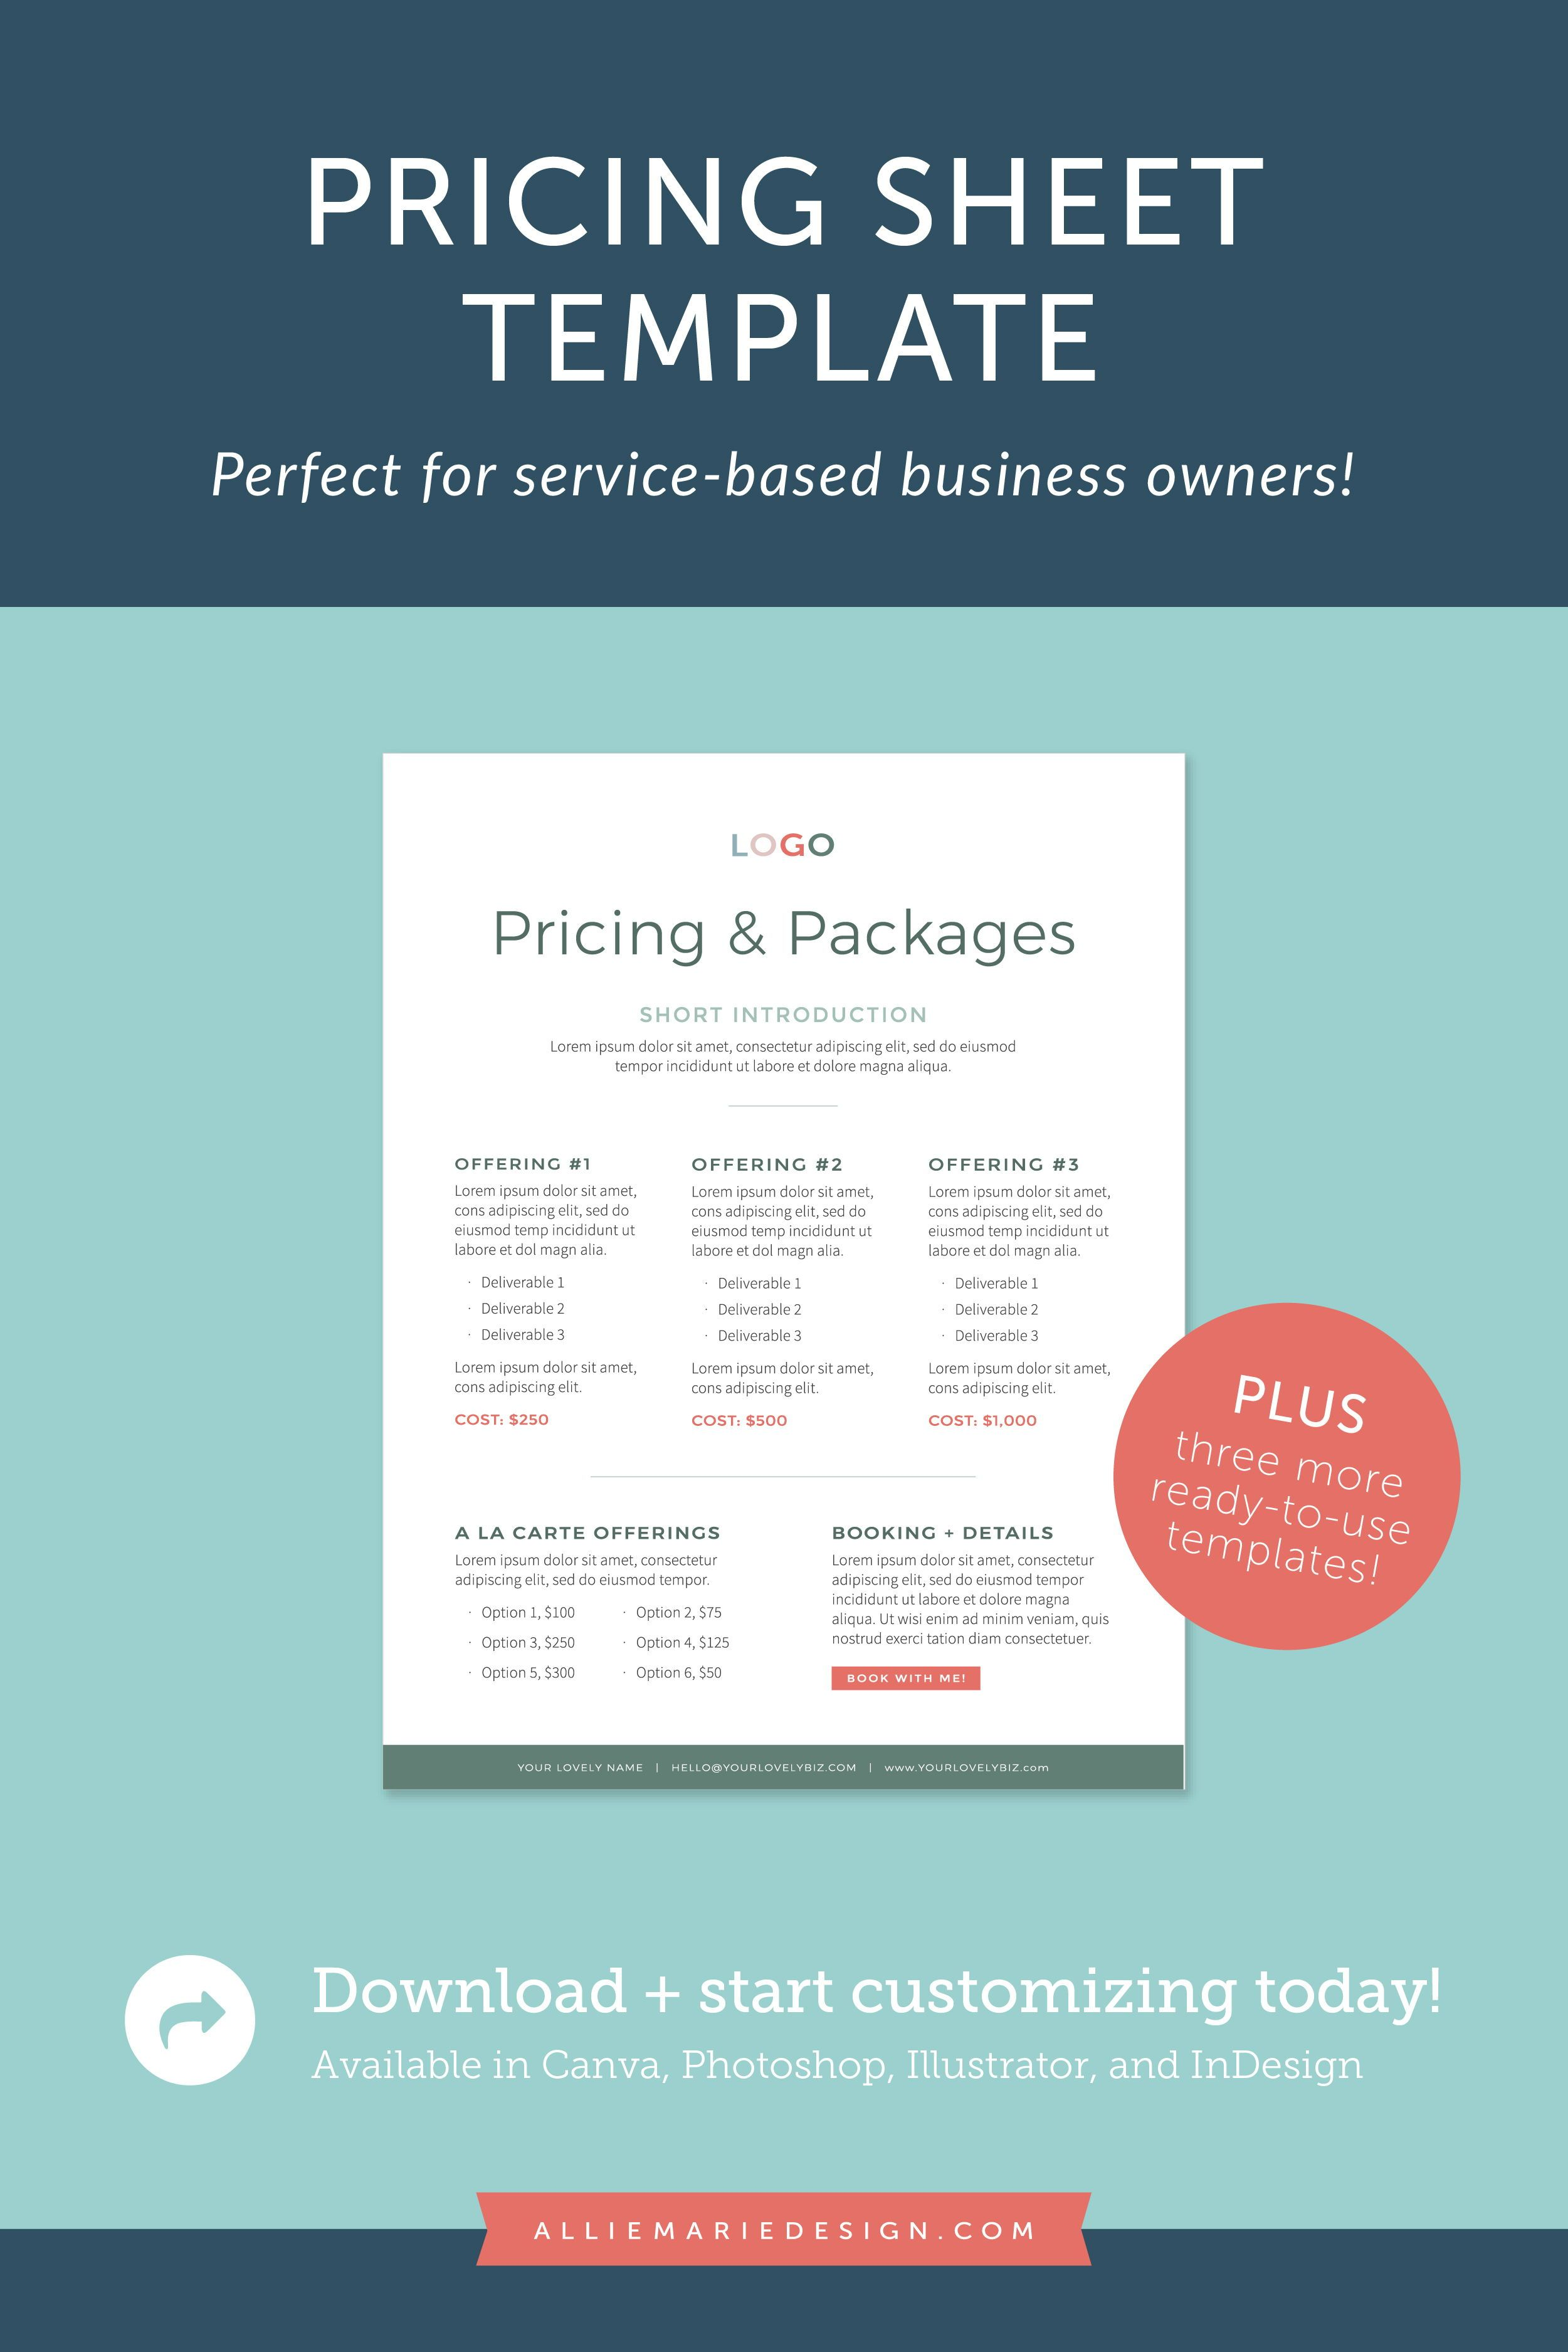 Check Out This Pricing Sheet Template Perfect For Service Based Business Owners From Alliemarie Desig Workbook Template Print Design Template Workbook Design